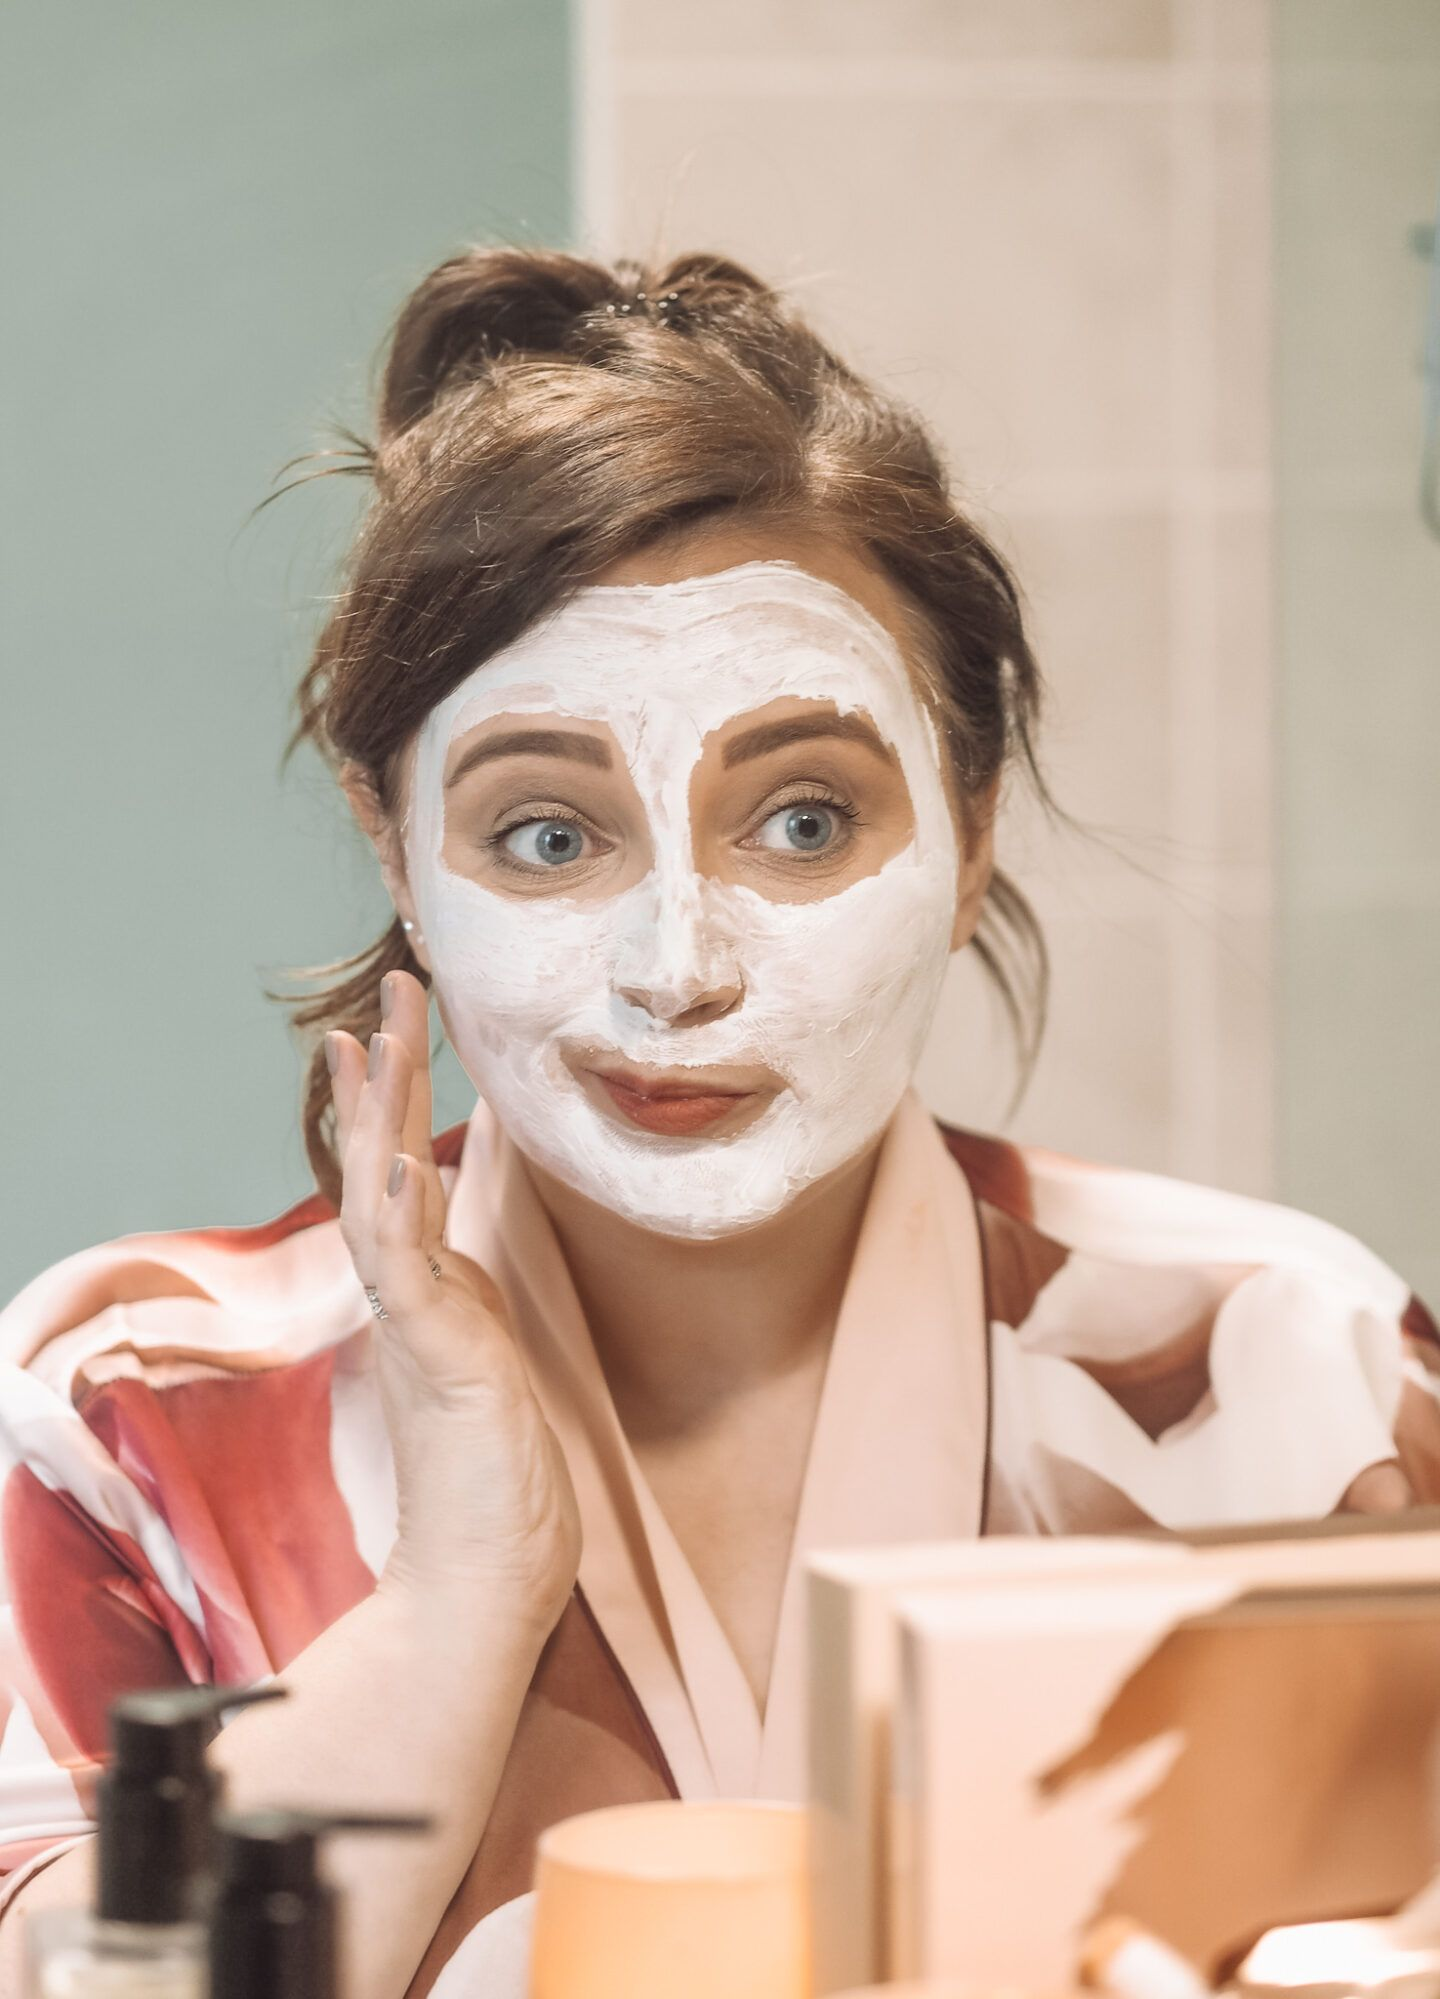 5 BEAUTY MANTRAS TO LIVE BY FOR BETTER SKIN WITH Édelora